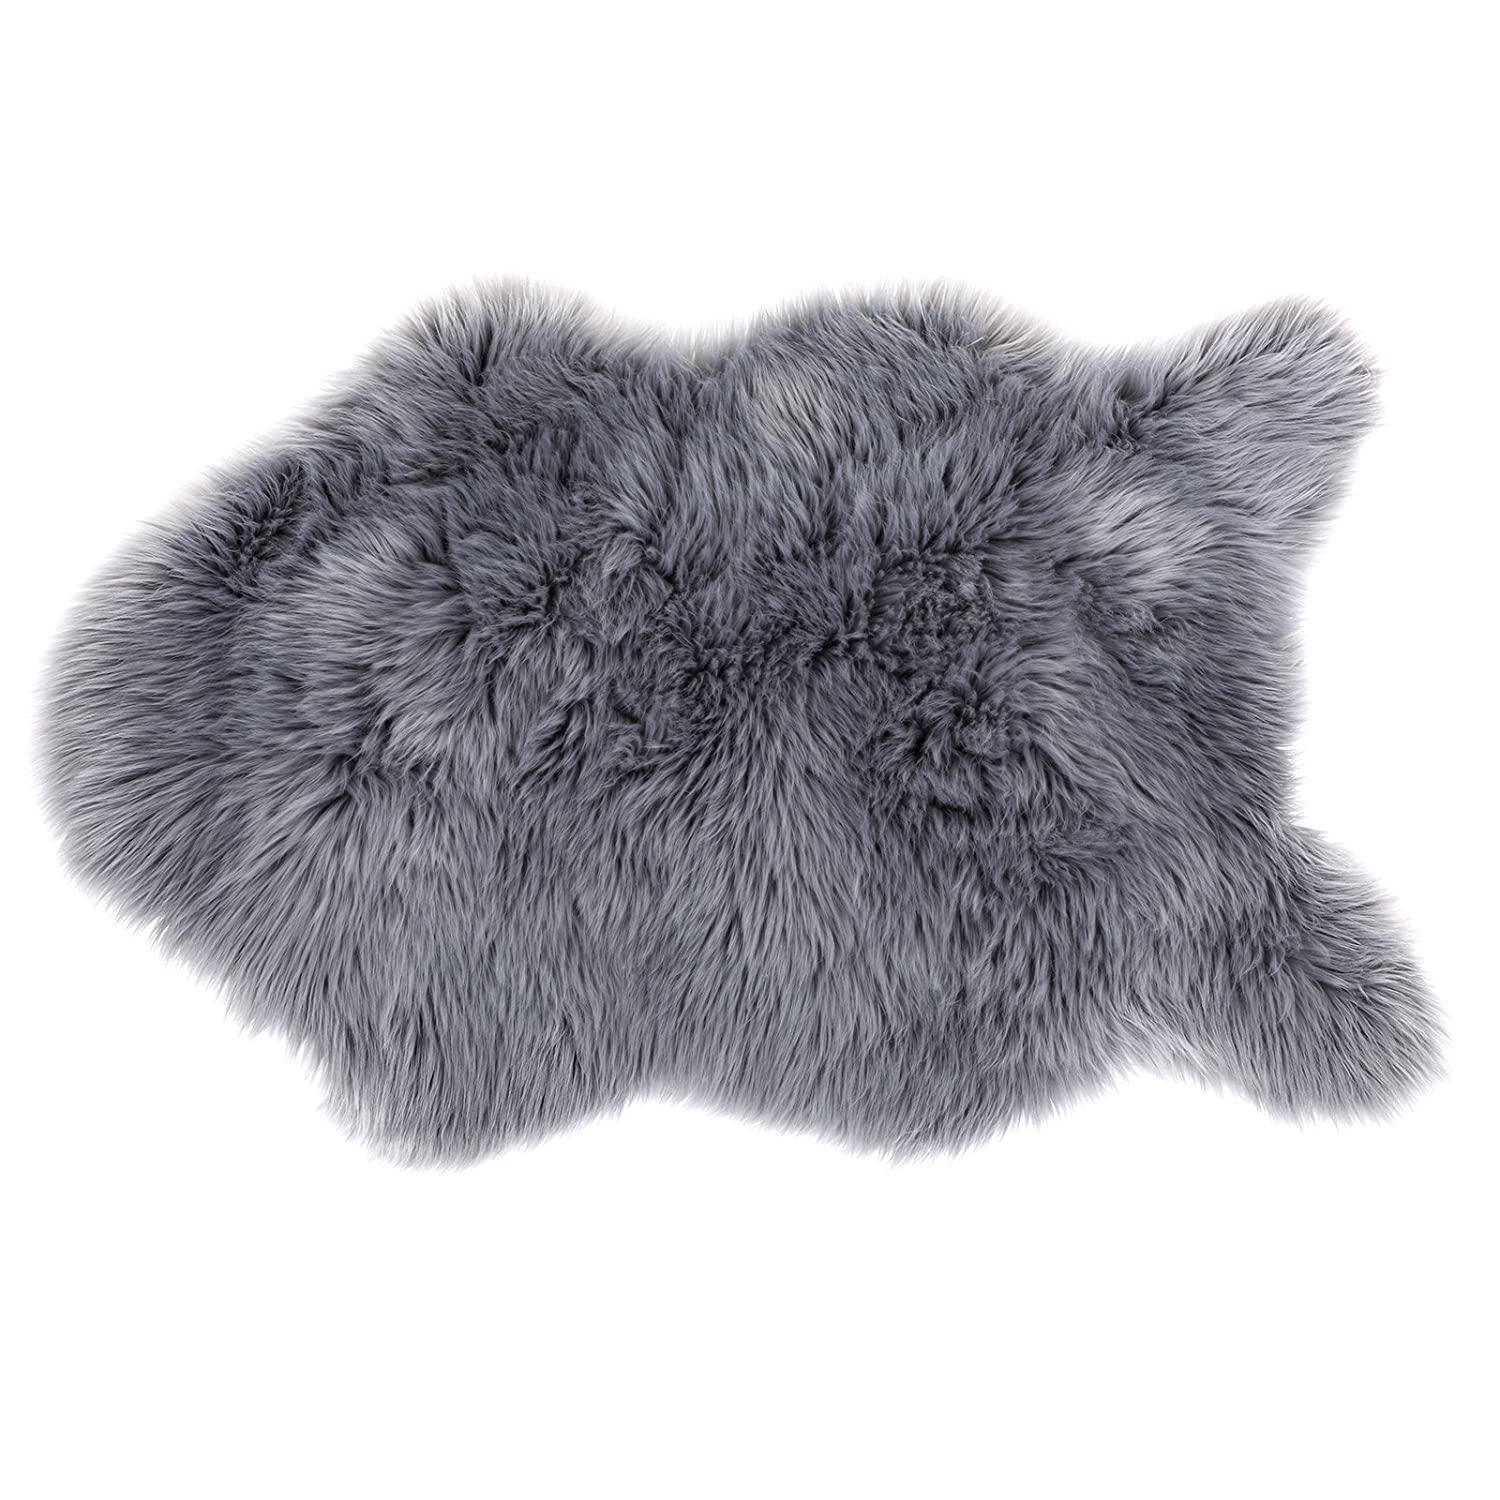 SONGMICS Super Soft Thick Faux Fur Rug, Faux Sheepskin Area Rug for Living Room Bedroom Dormitory Home Decor, Photo Prop, Diameter 3 Feet, Gray URFR91GY